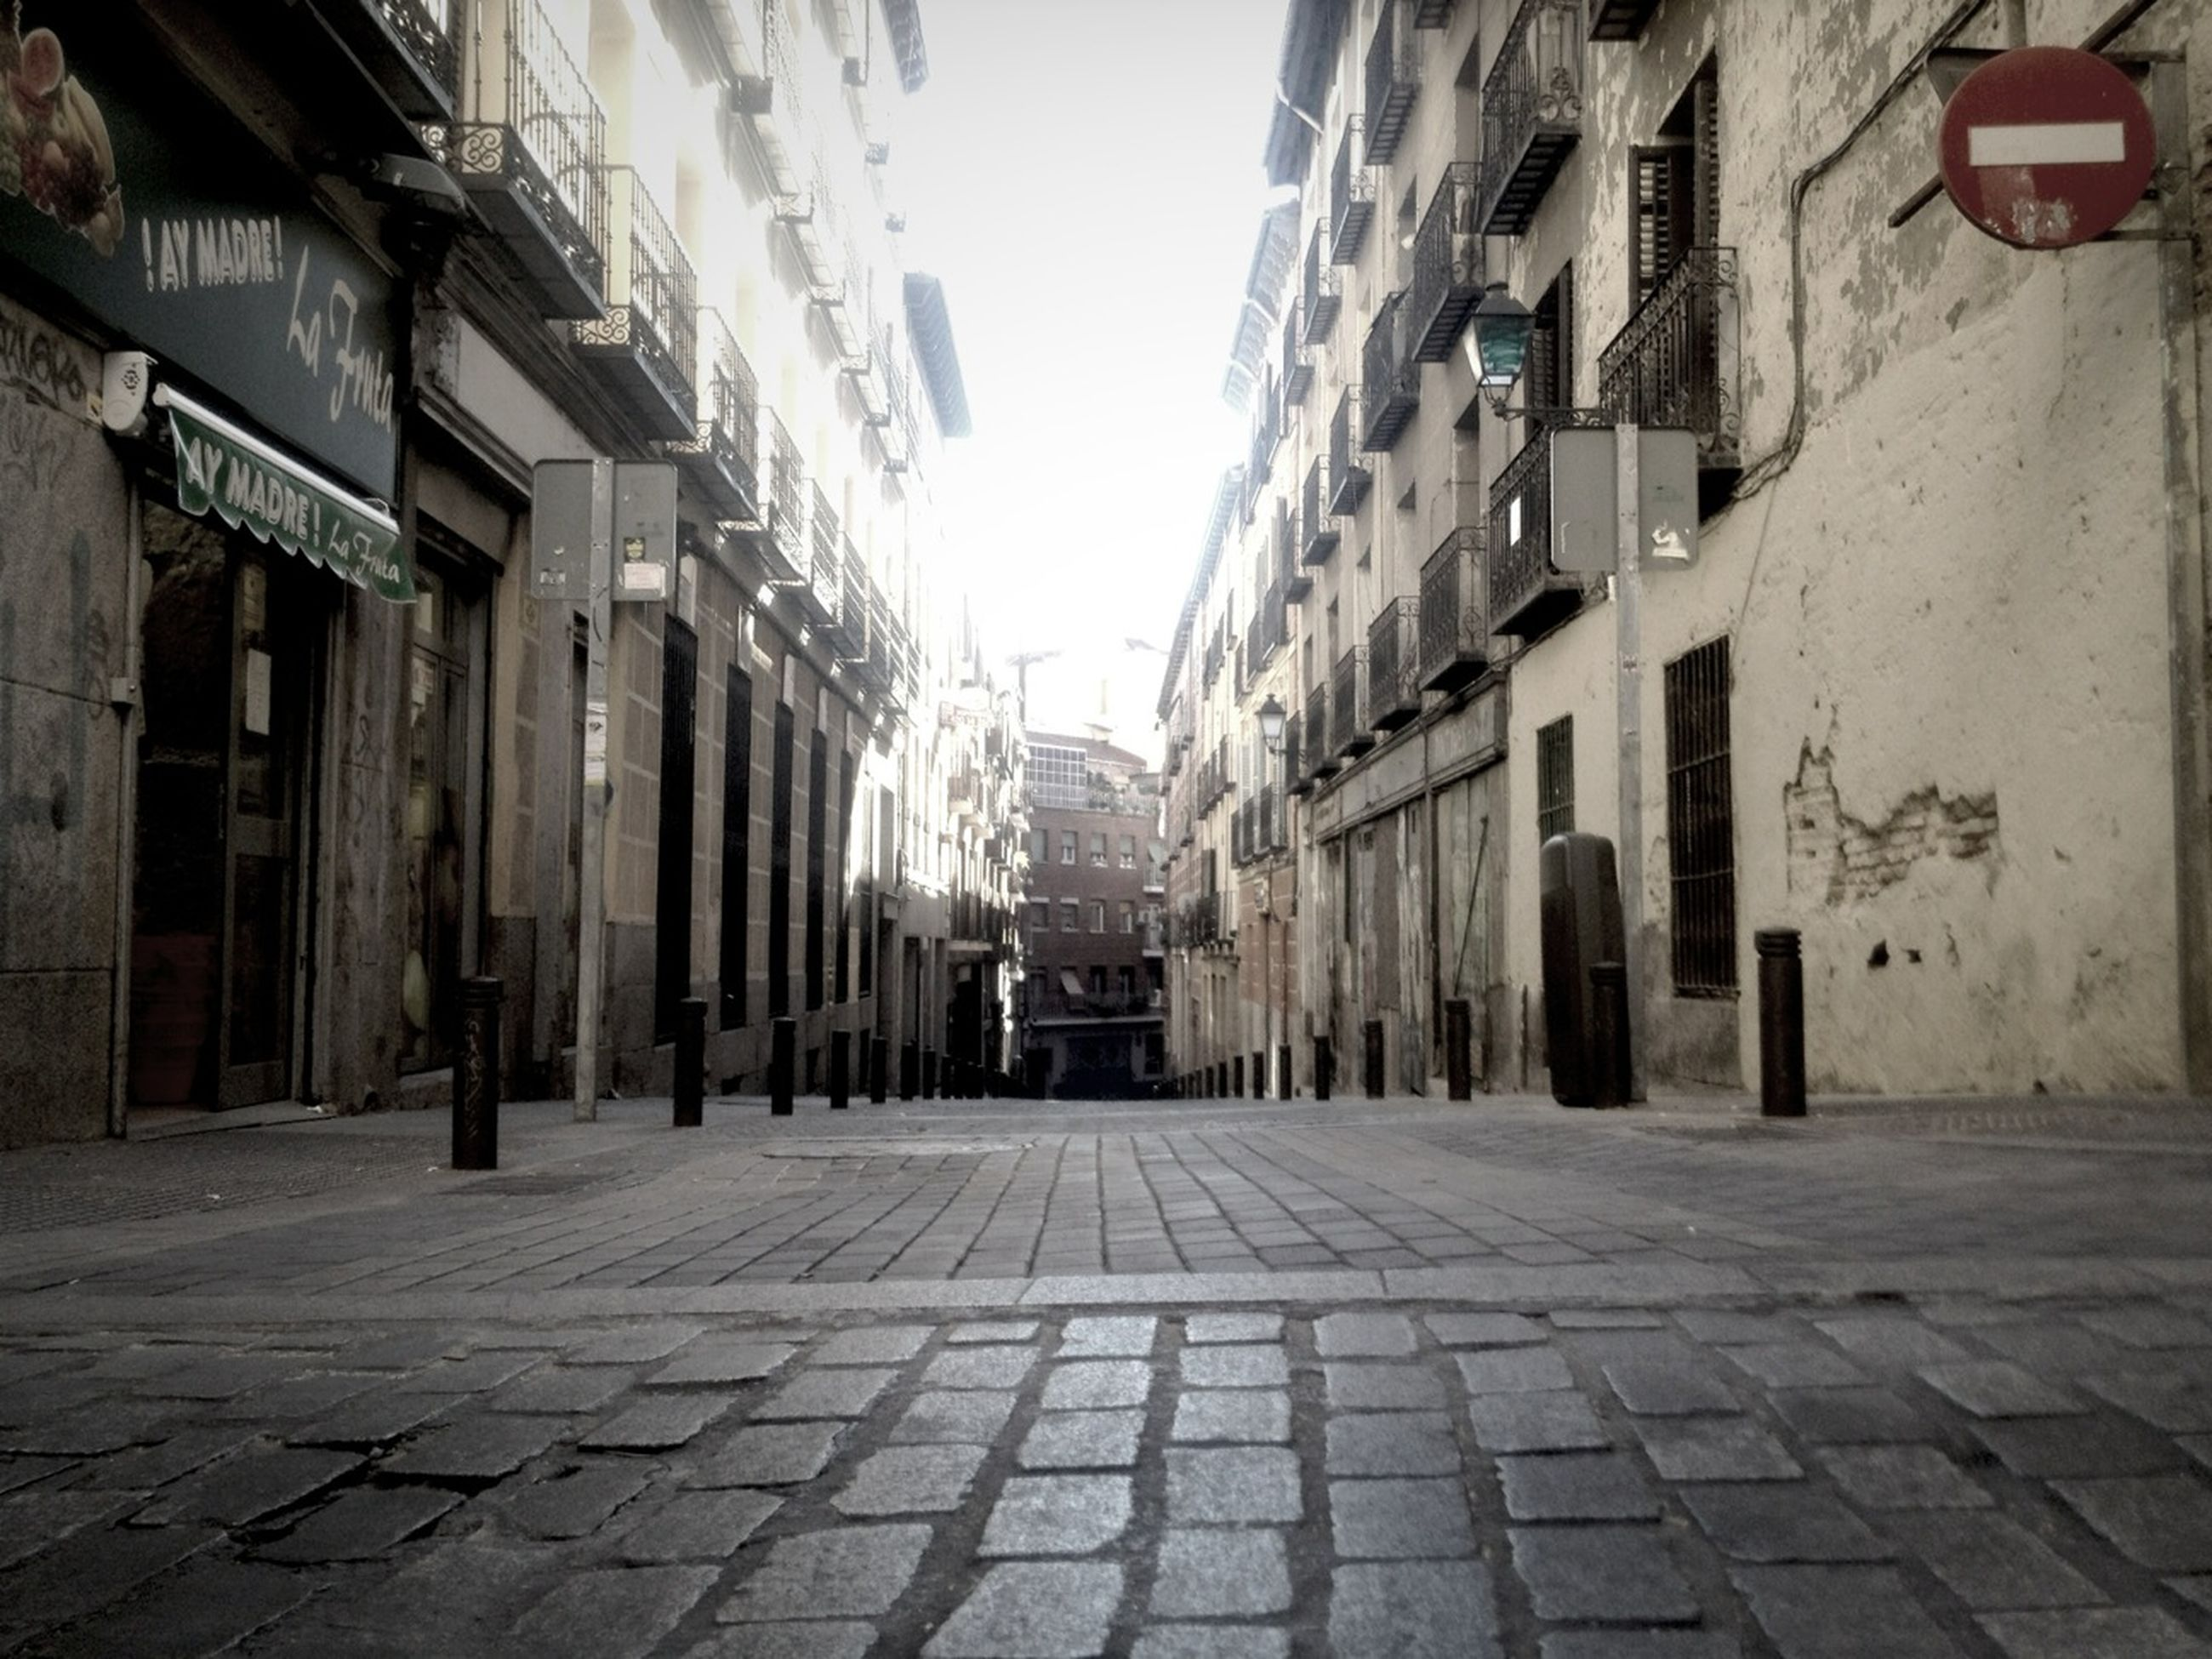 building exterior, architecture, built structure, the way forward, street, residential building, building, residential structure, city, cobblestone, diminishing perspective, alley, narrow, vanishing point, sky, house, transportation, outdoors, day, town